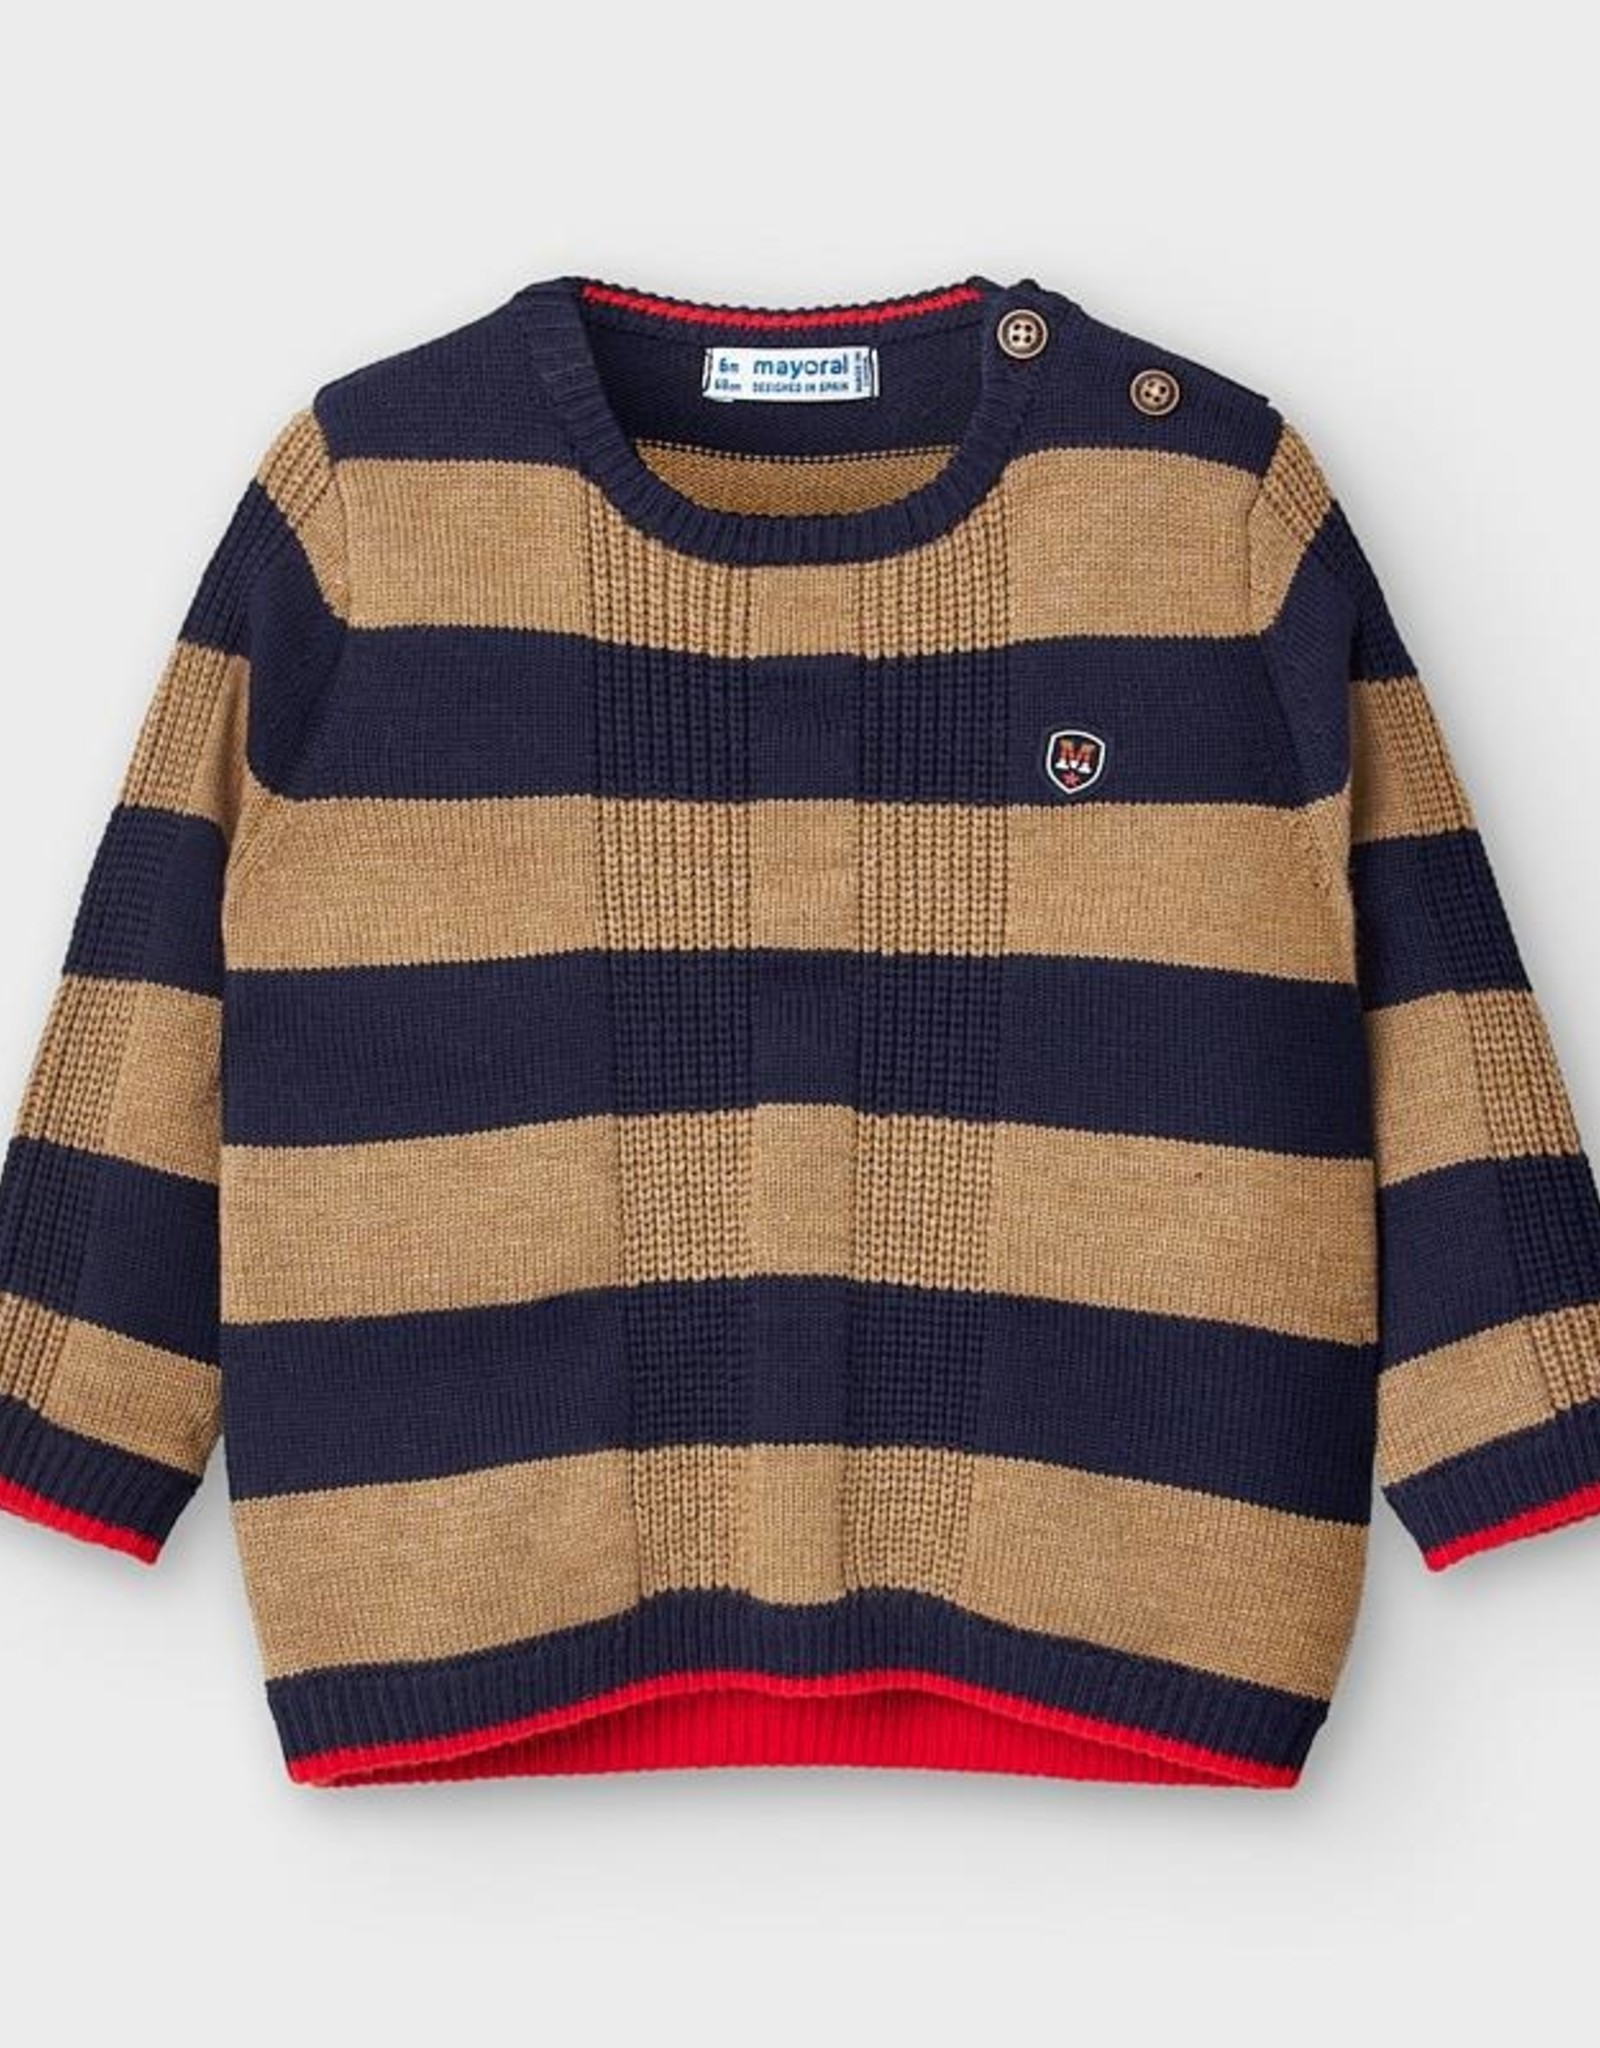 Mayoral Grisly Sweater